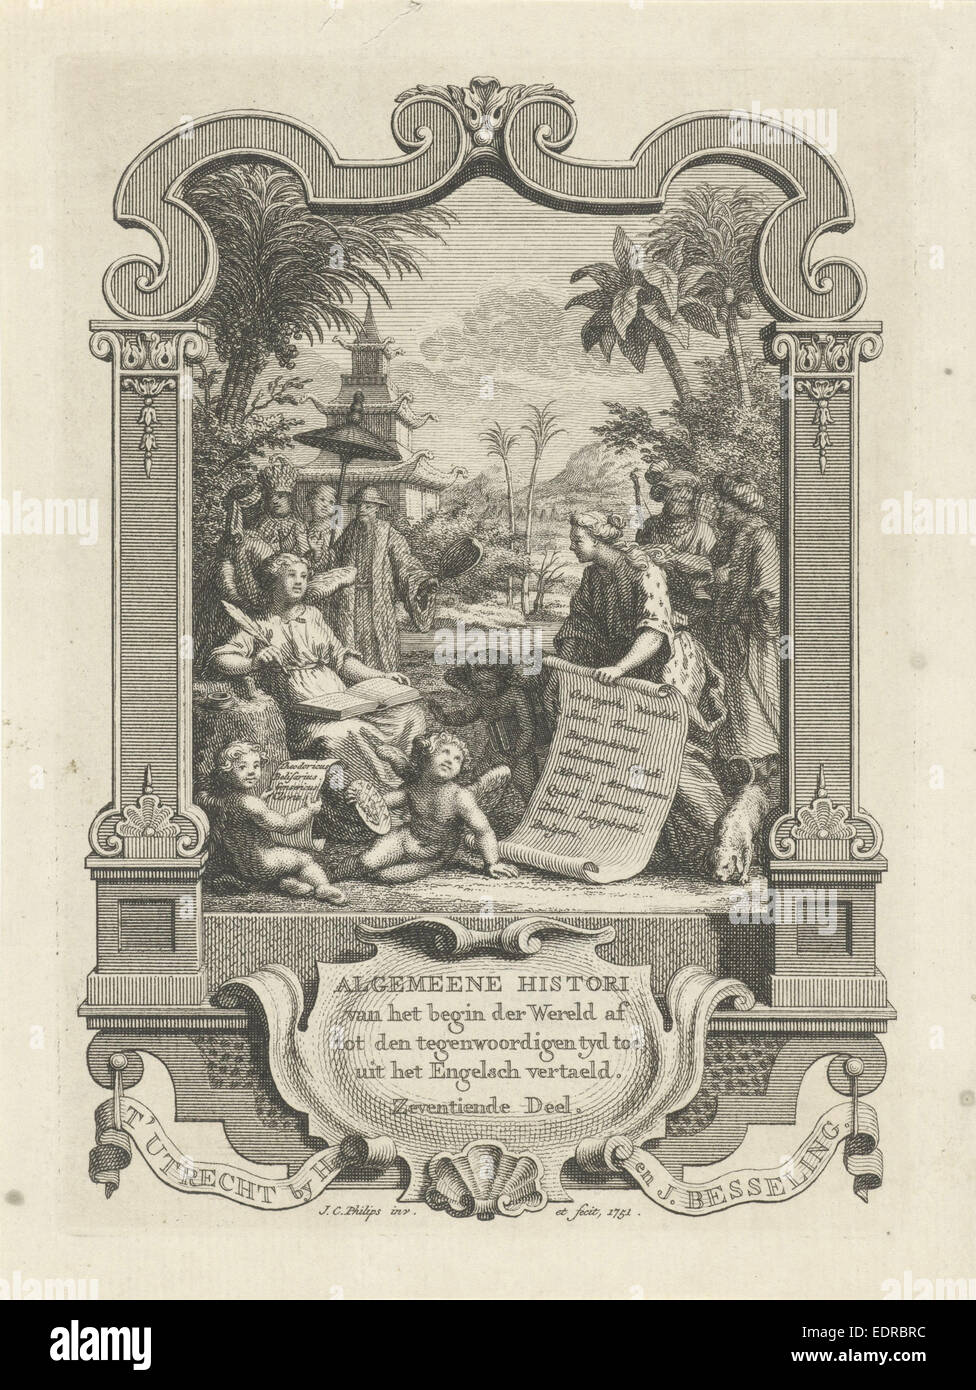 Allegorical title page History, Jan Caspar Philips, 1751 - Stock Image